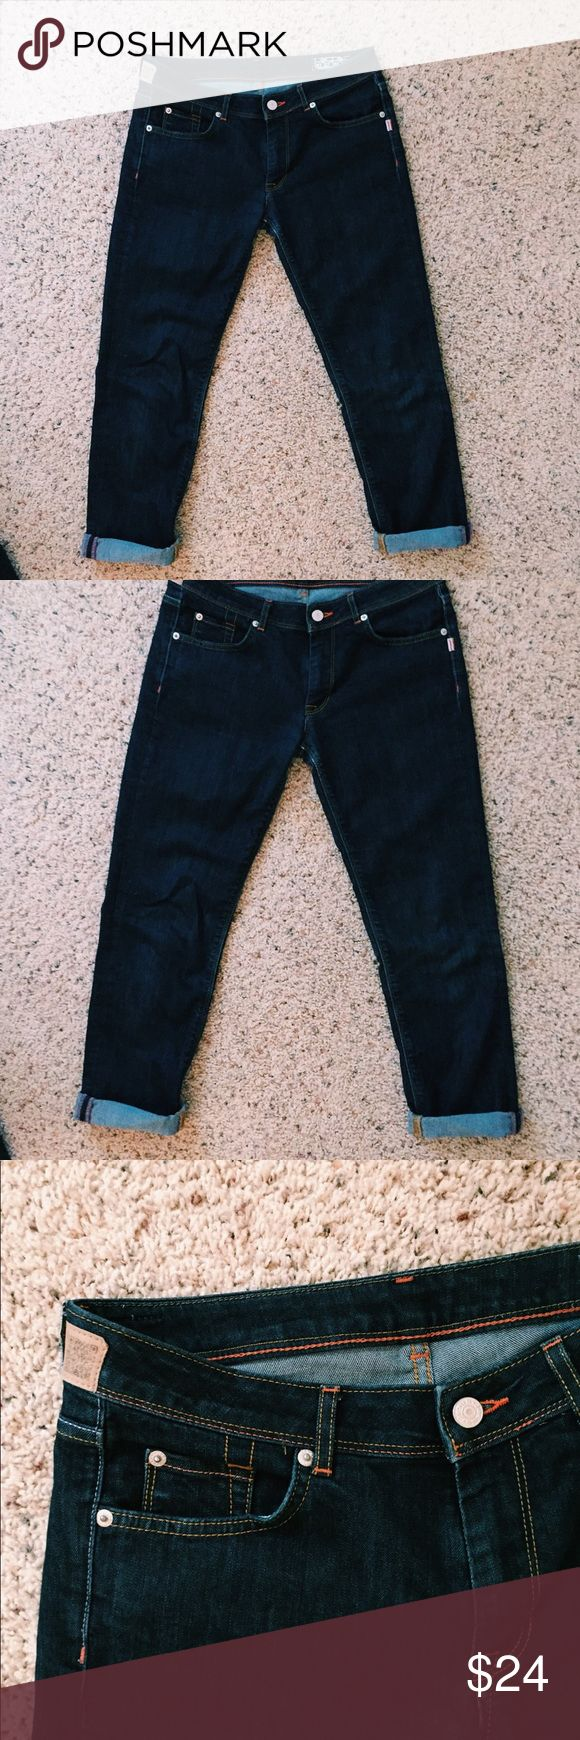 Denim Capris EUC denim capris Jesus jeans. Measurements shown in picture. In excellent condition! Feel free to make an offer! Jesus Jeans Ankle & Cropped